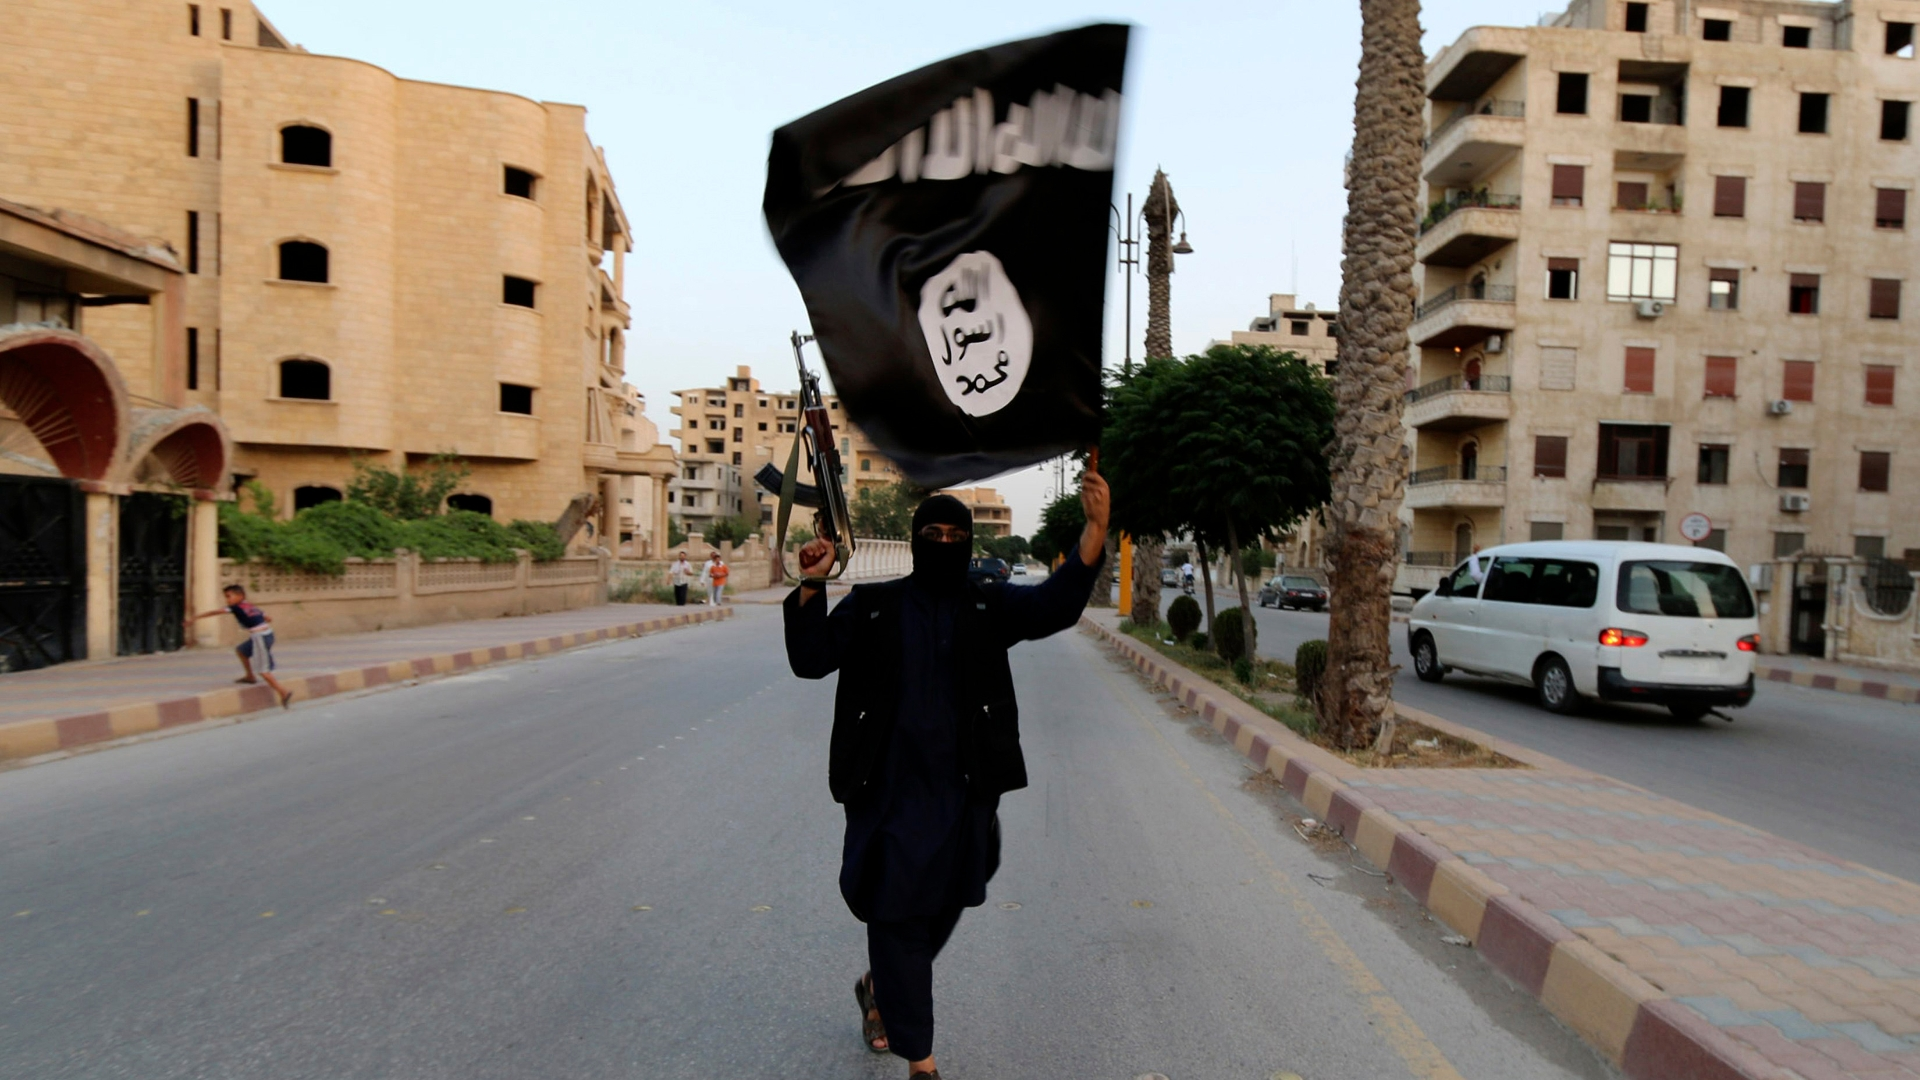 With the loss of its caliphate, ISIS could turn even more reckless and radical